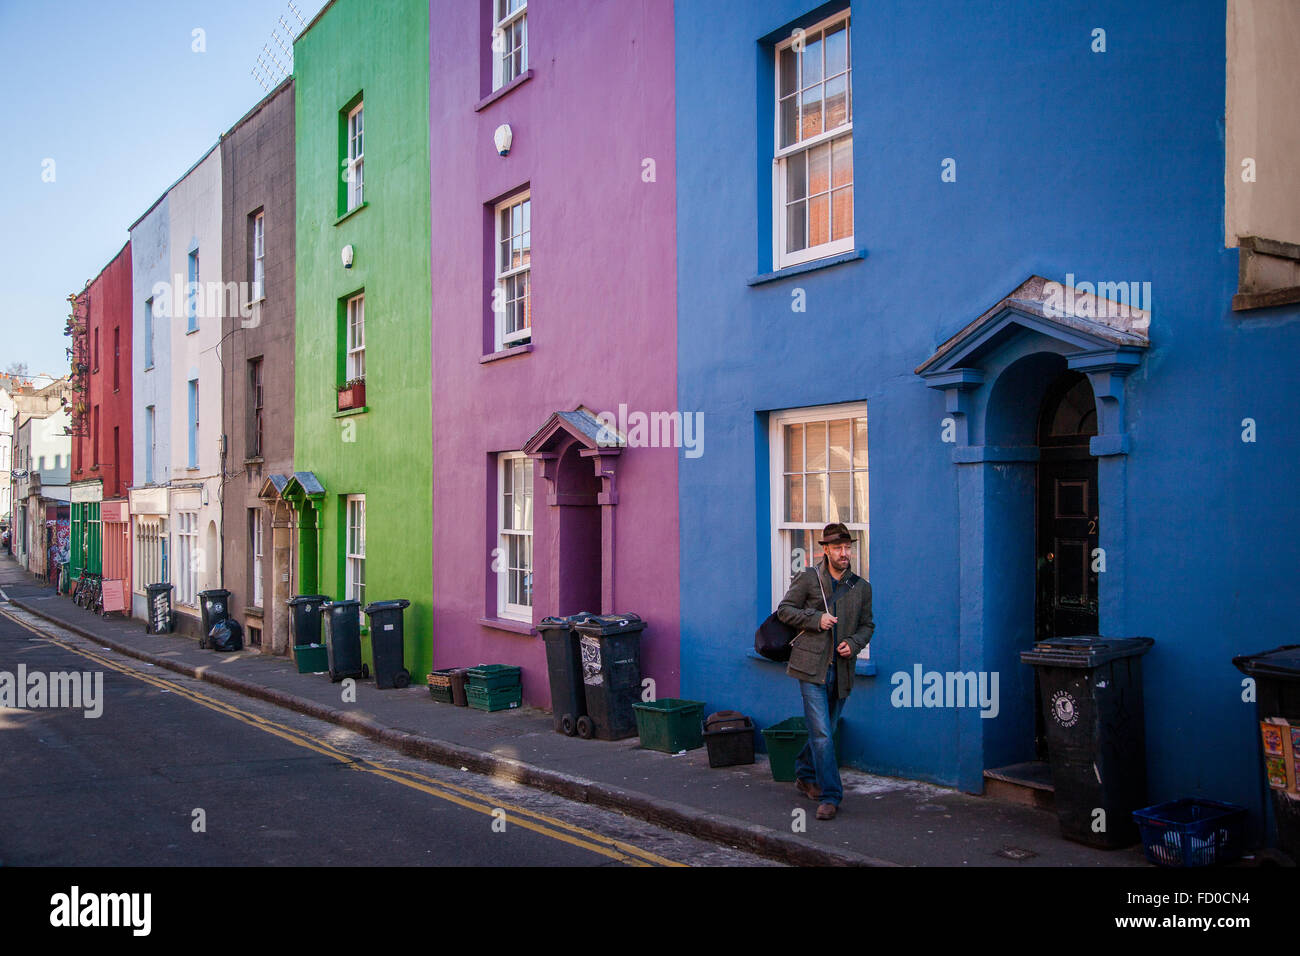 Colourful terraced houses in Stokes Croft, Bristol, England - Stock Image